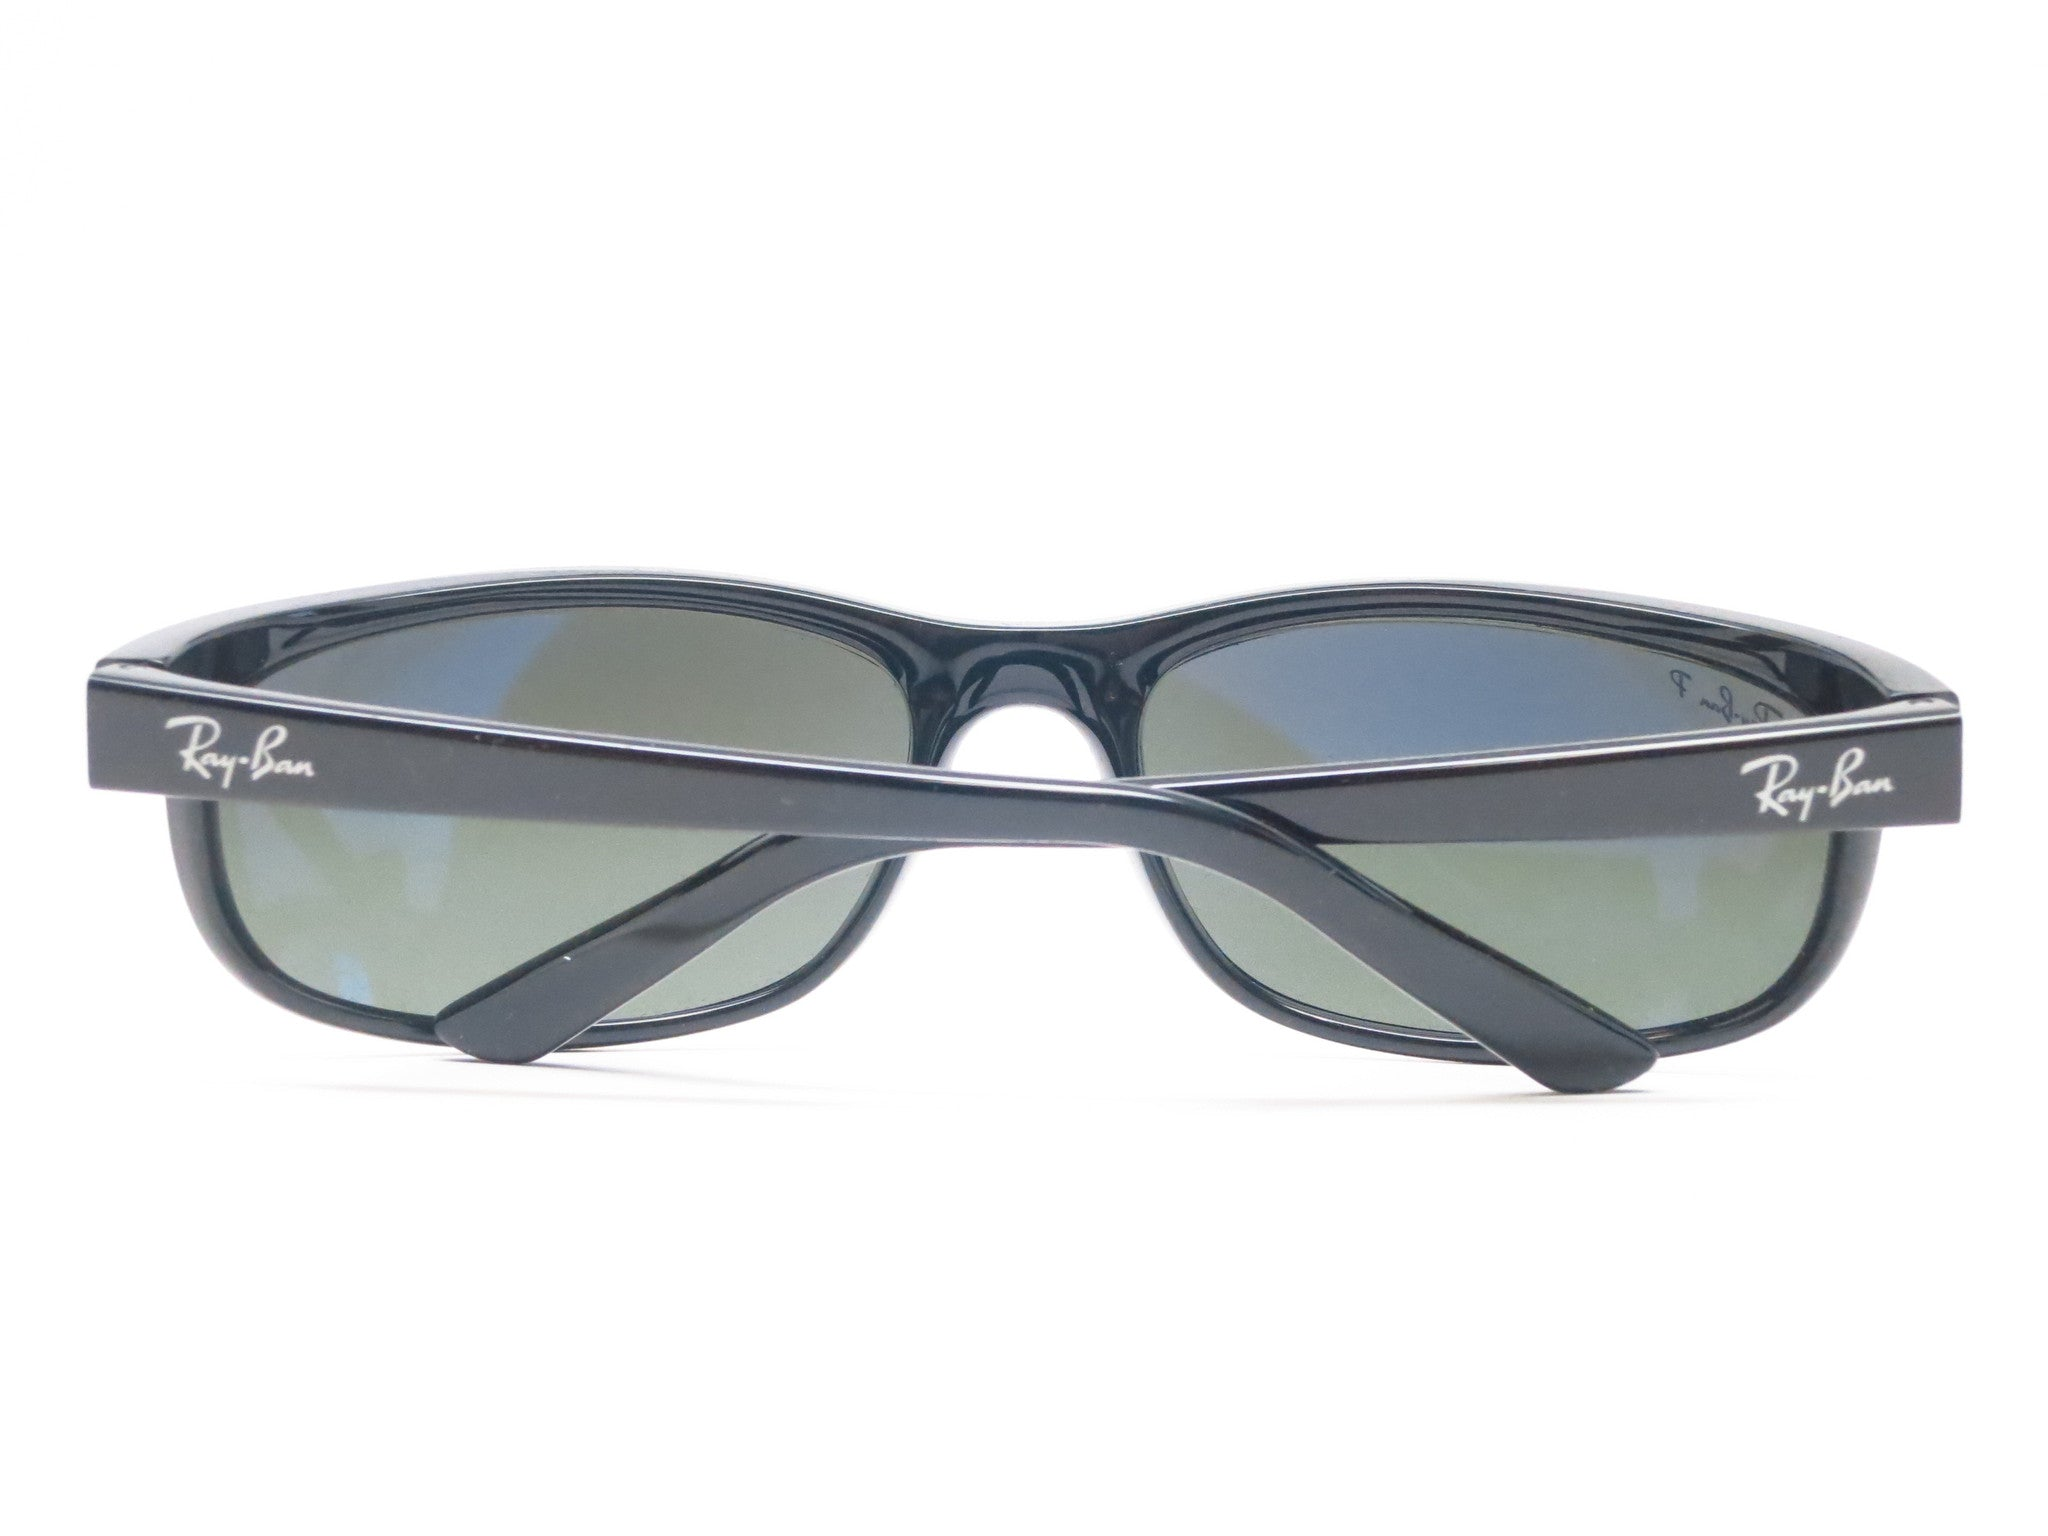 3f84d7b2c2 ... switzerland ray ban rb 2027 predator 2 601 w1 black polarized  sunglasses eye heart dd33d 62db2 ...